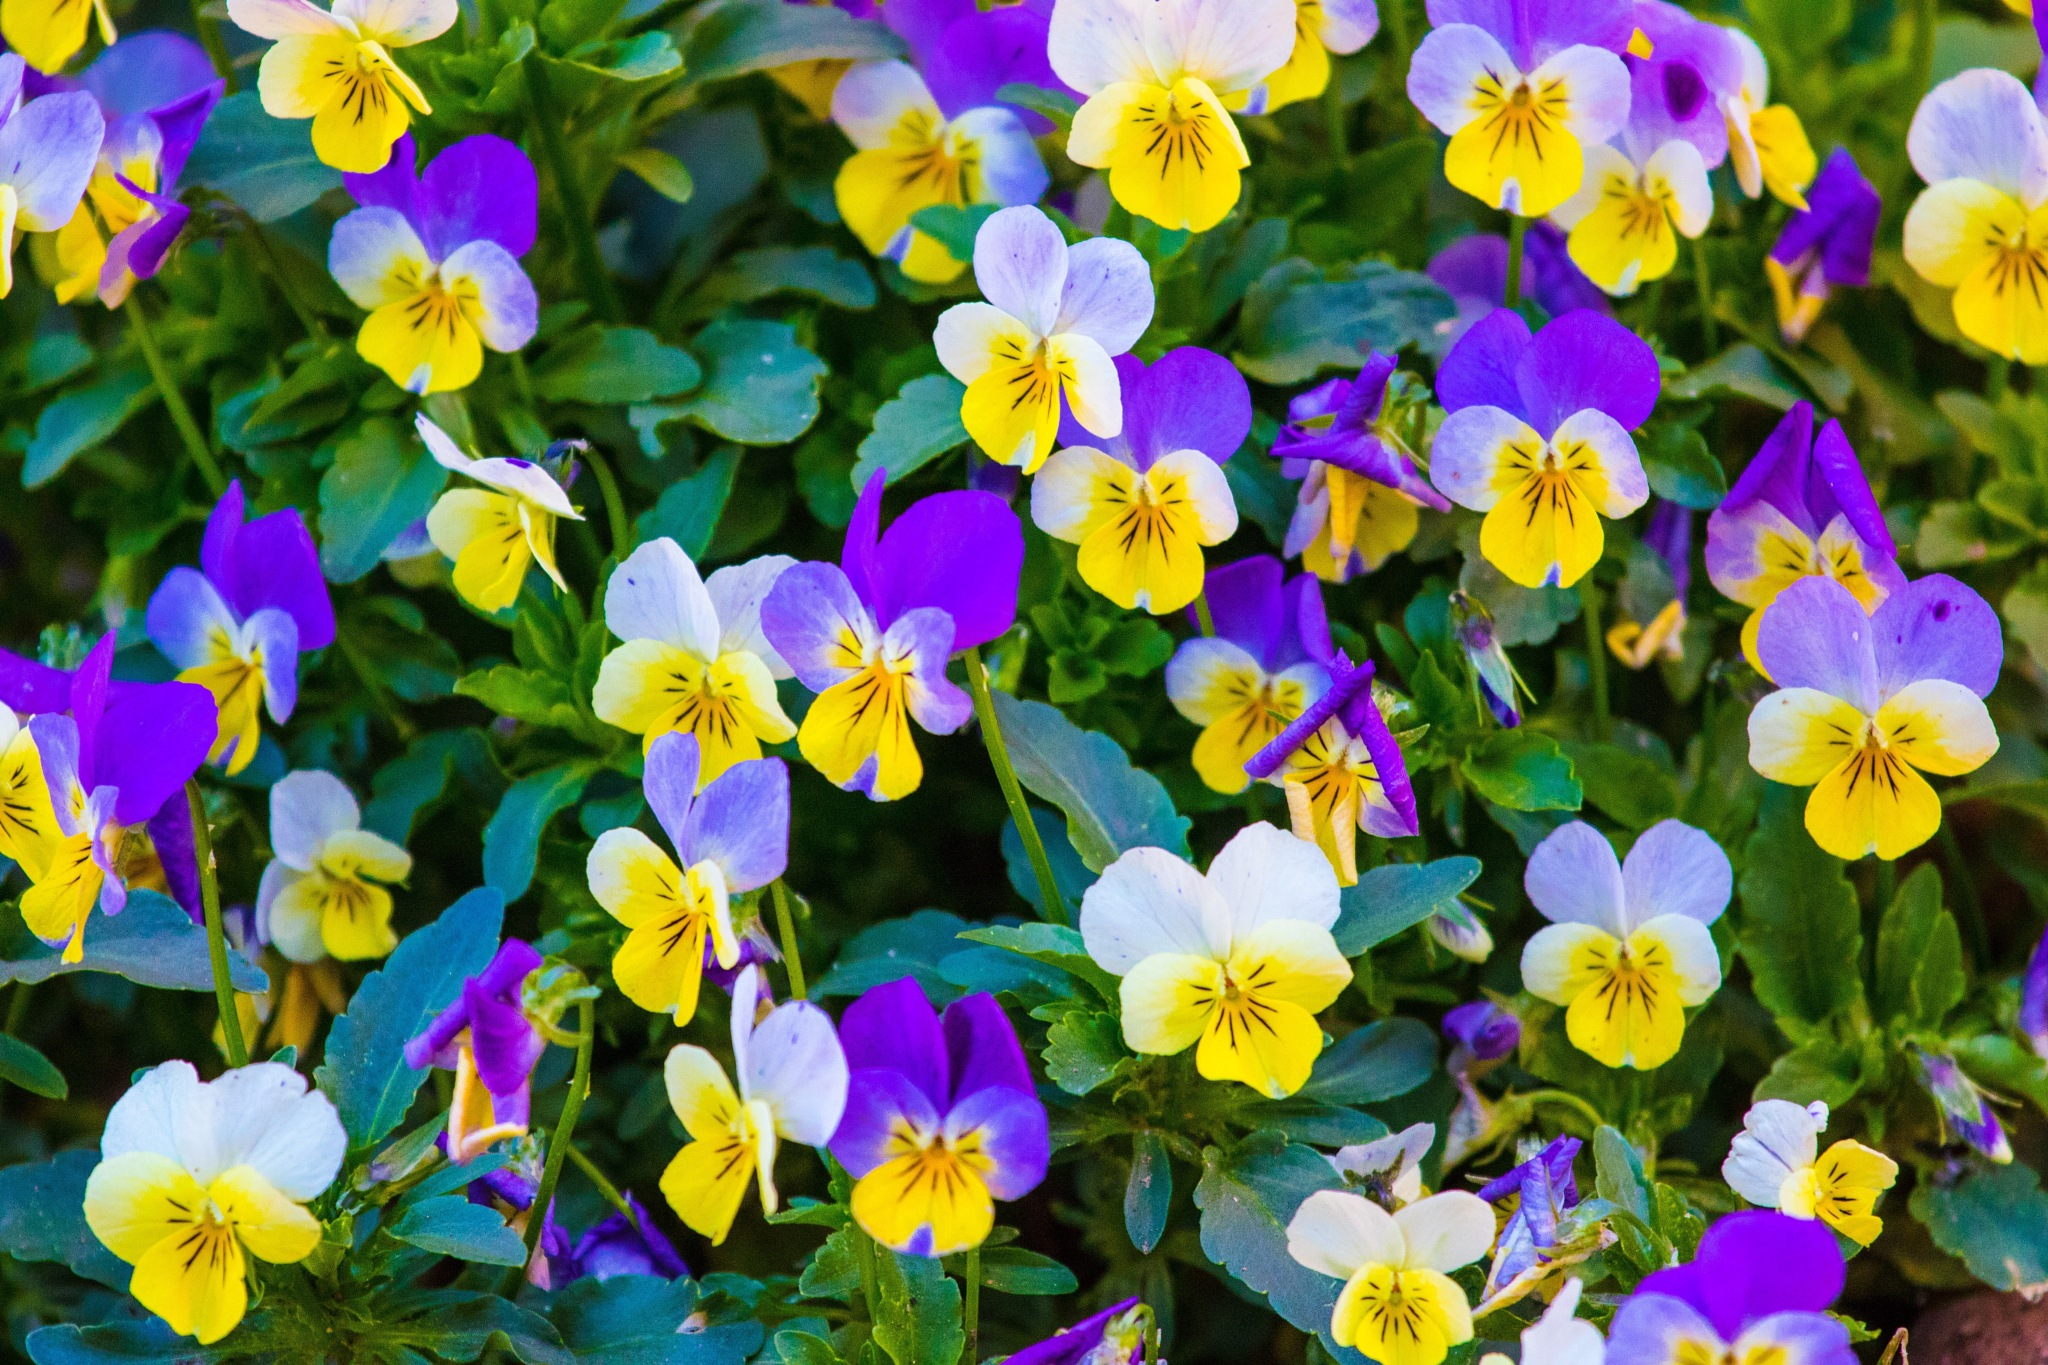 Pansie's by ejk41